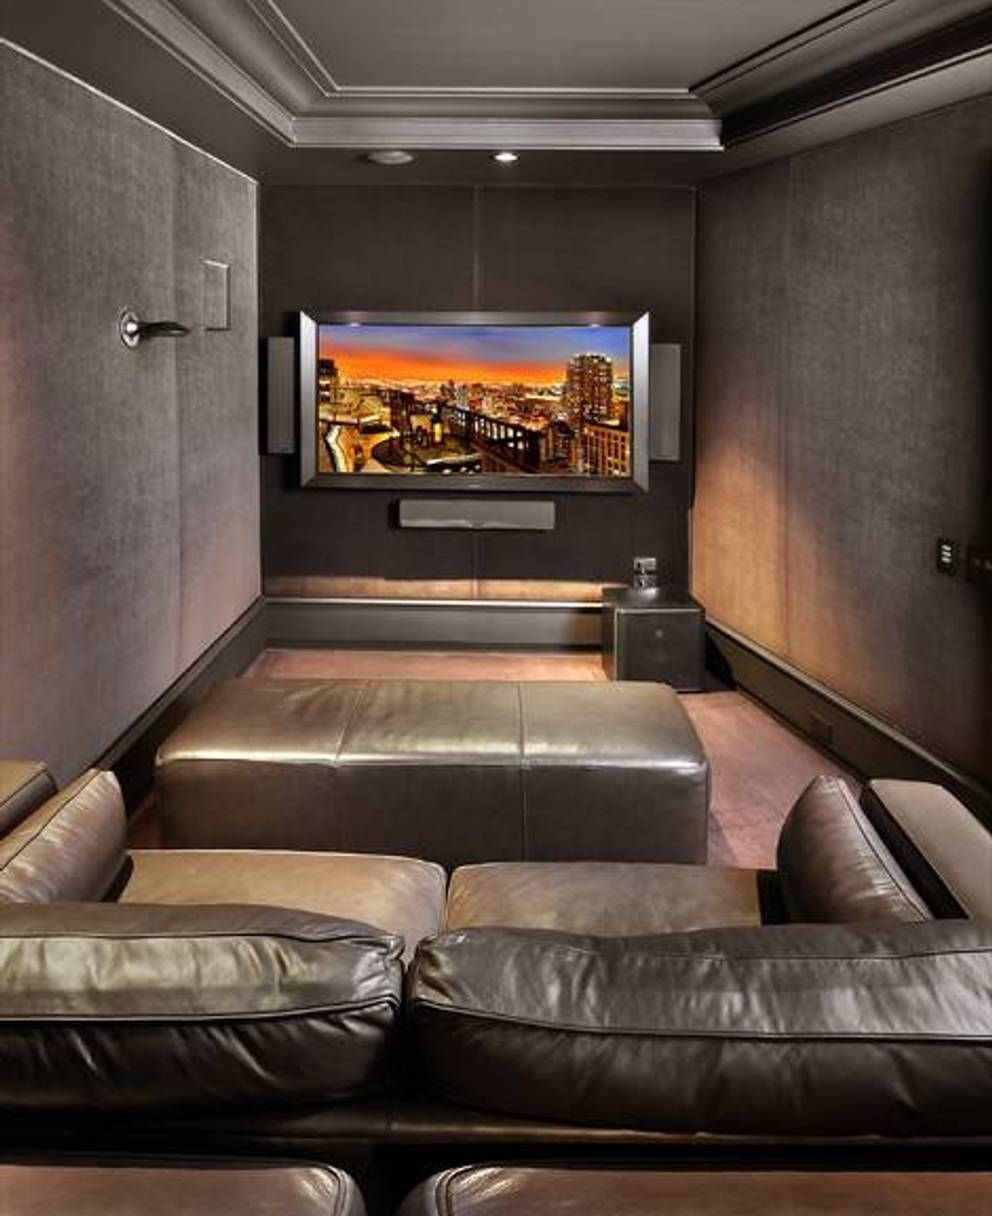 10 Most Popular Home Theater Ideas For Small Rooms home design and decor small home theater room ideas modern small 2020